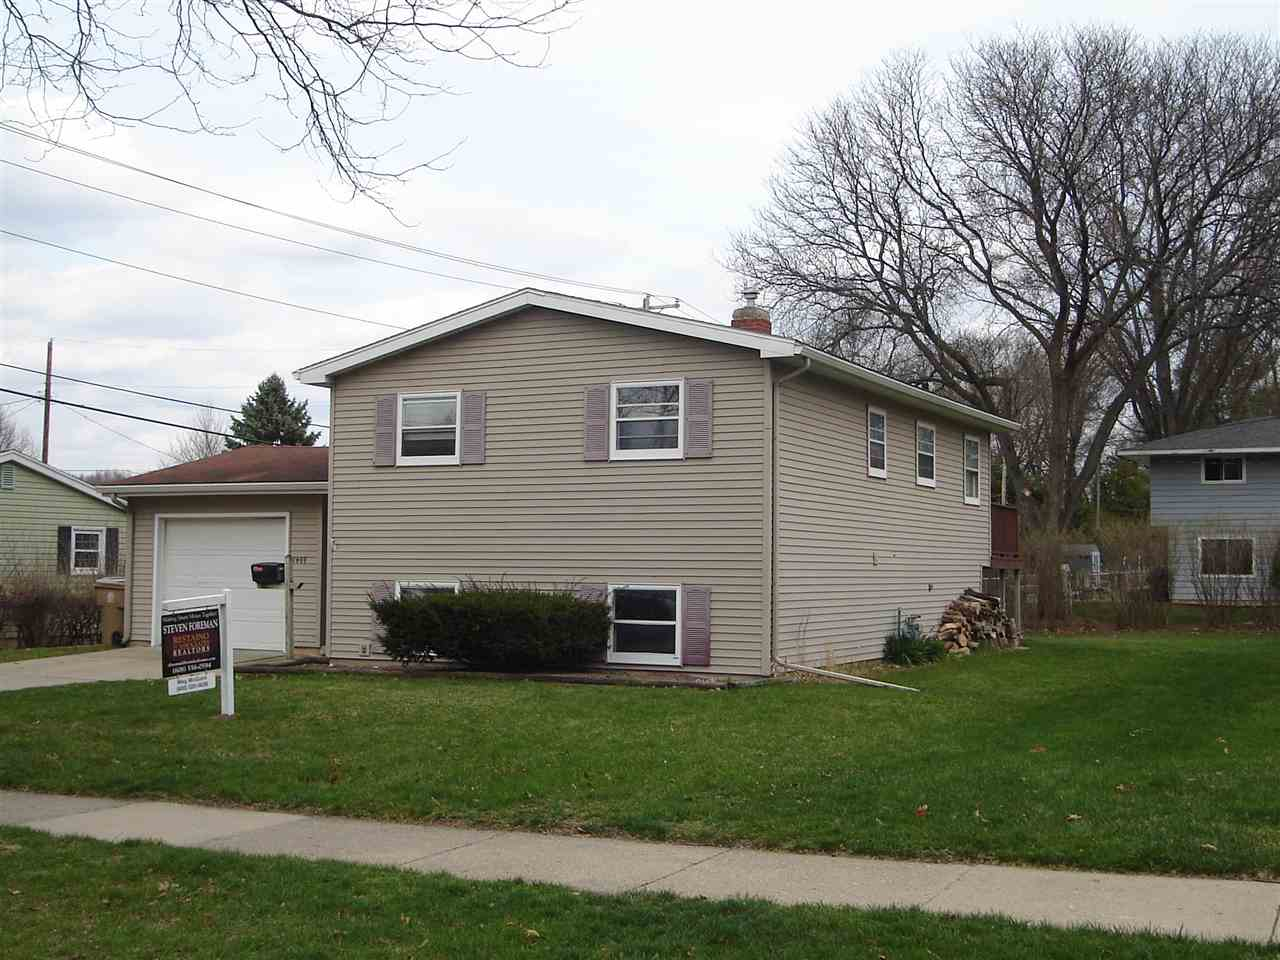 1409 Woodvale Dr, MADISON, Wisconsin 53716, 4 Bedrooms Bedrooms, ,2 BathroomsBathrooms,Single Family,For Sale,1409 Woodvale Dr,1904782